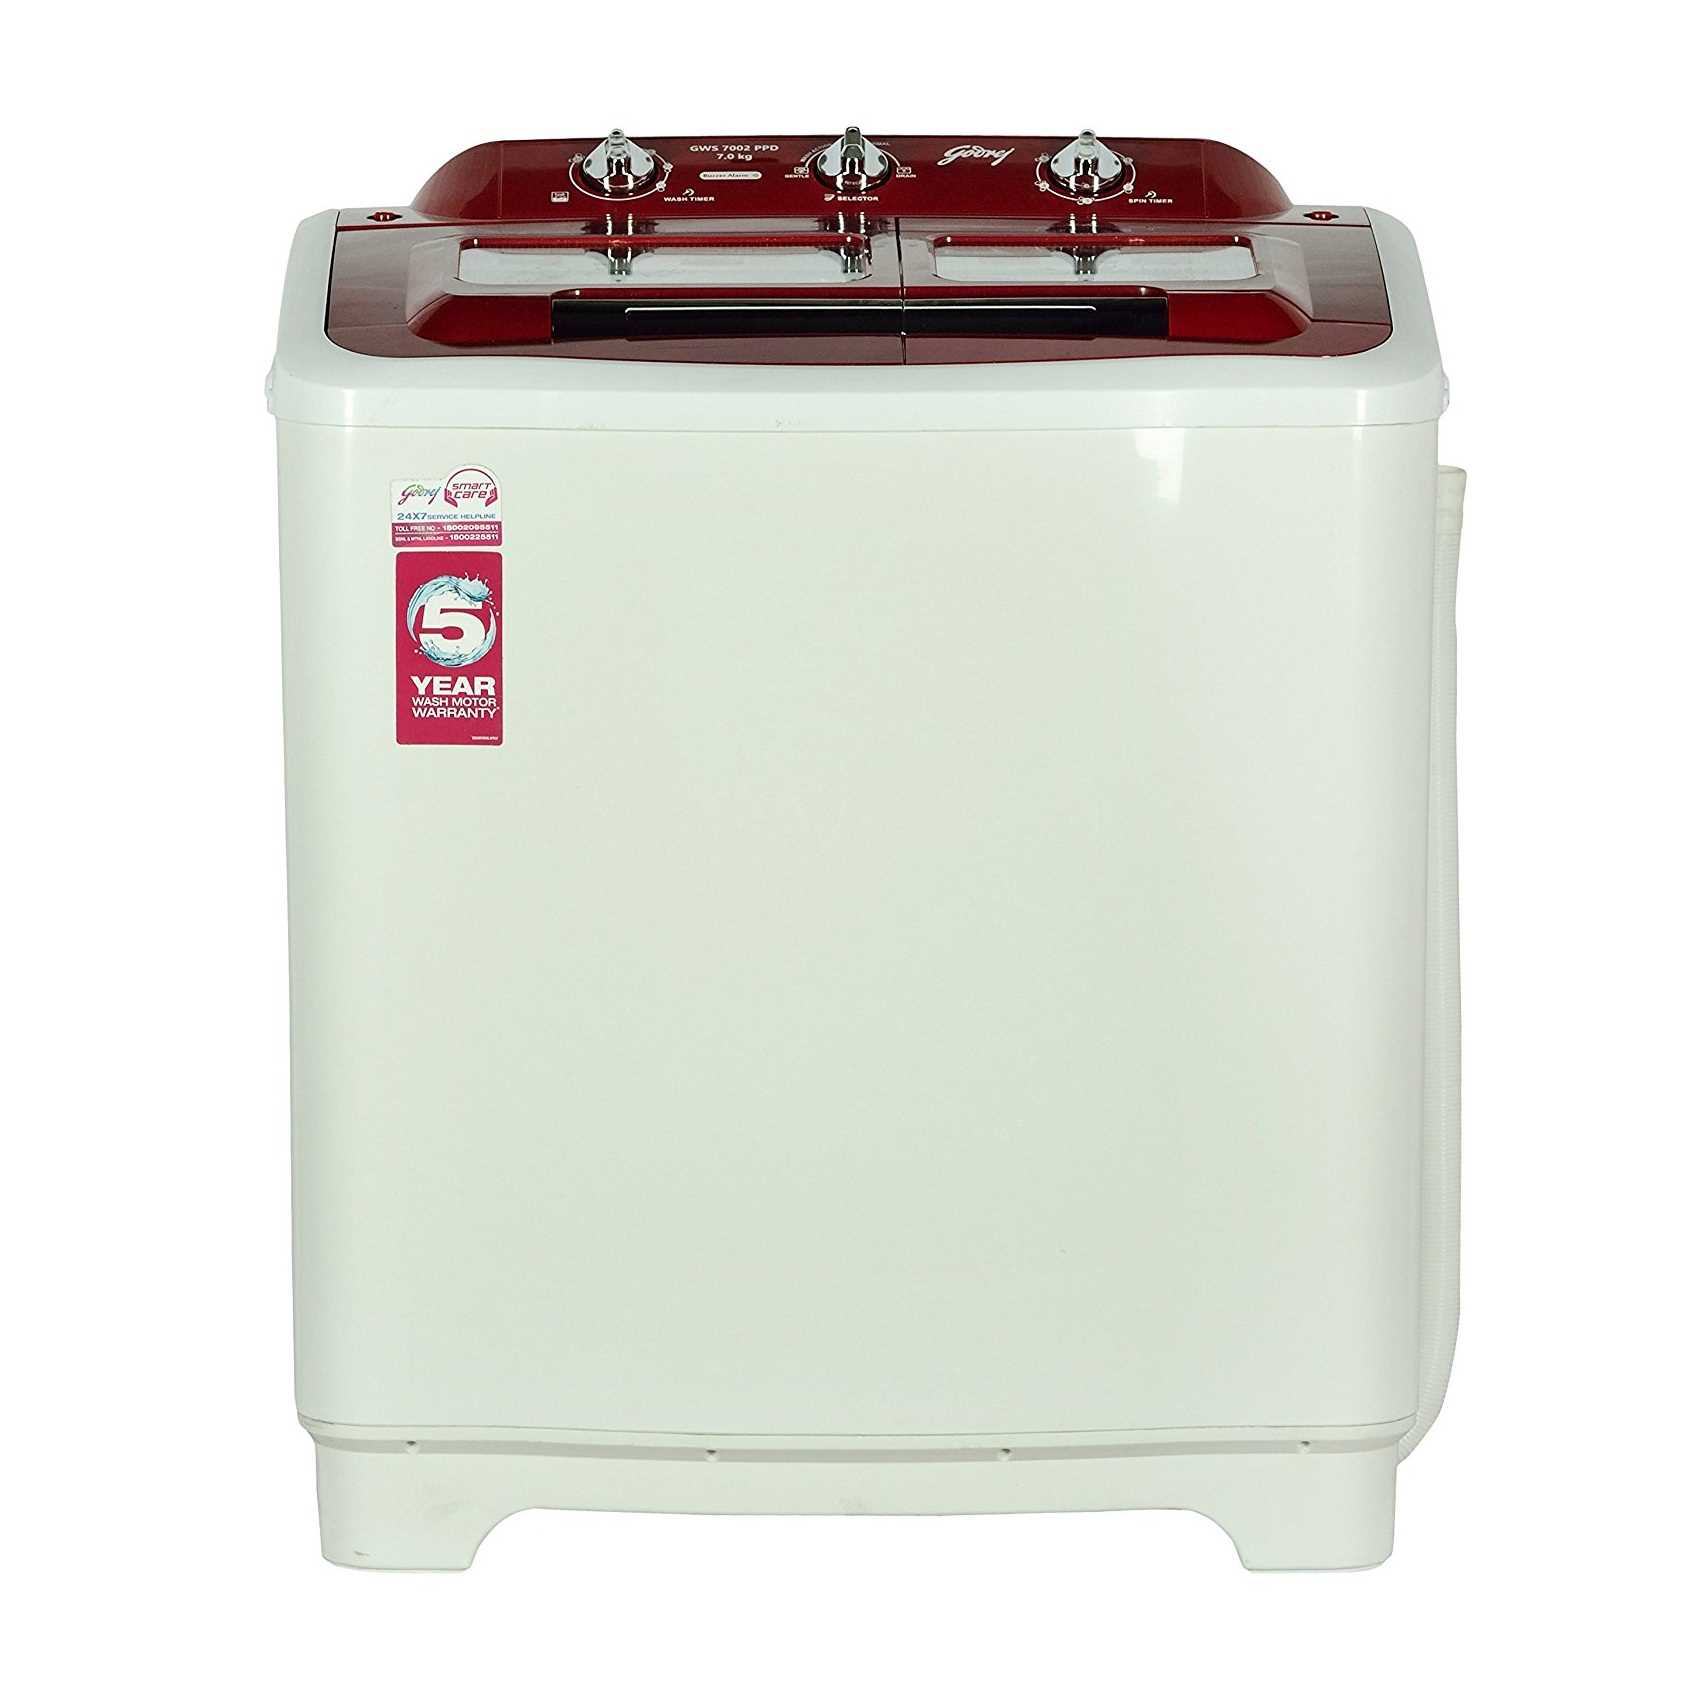 Godrej GWS 7002 PPD 7 Kg Semi Automatic Top Loading Washing Machine